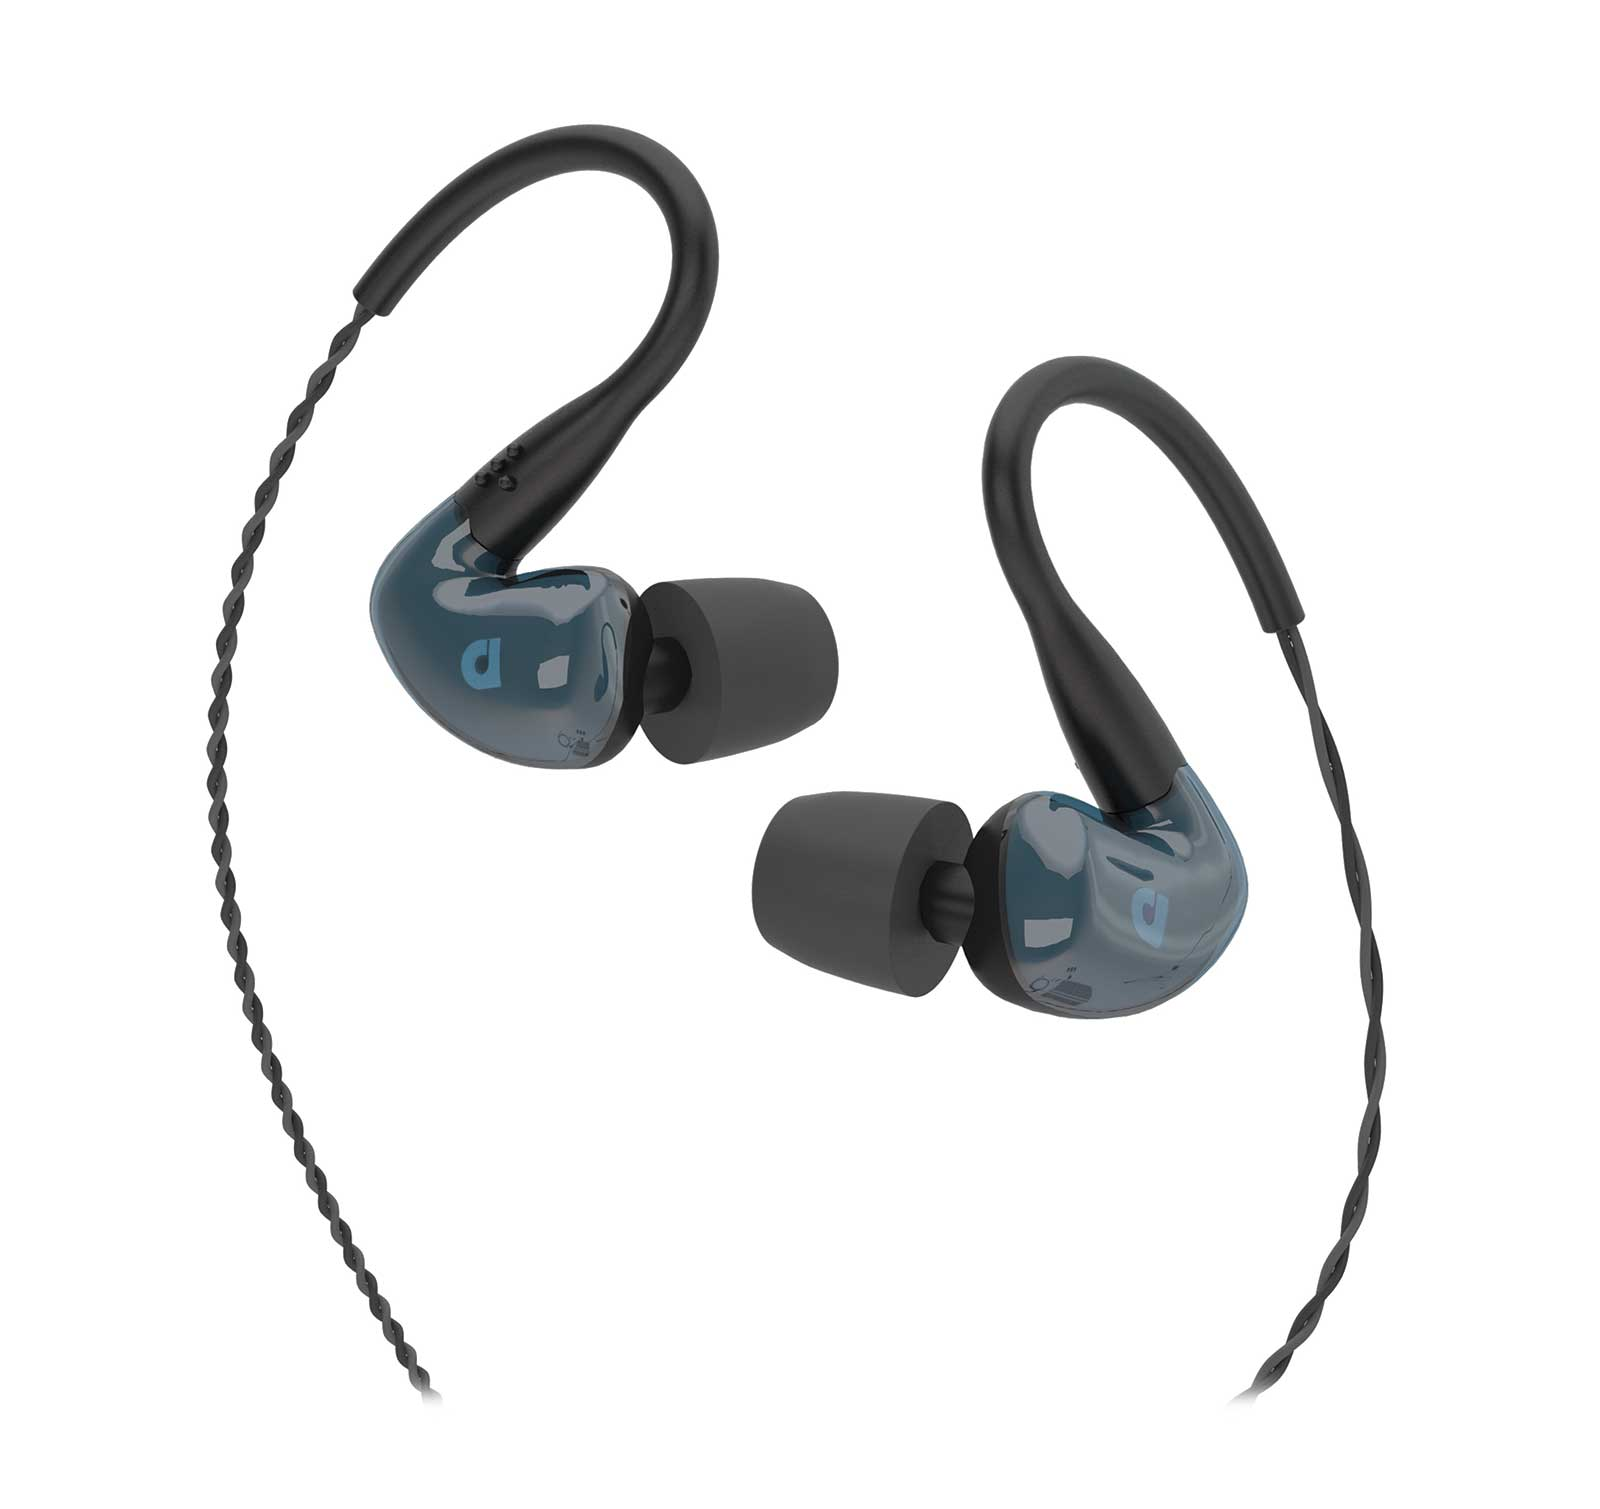 Audiofly AF180 Stone Blue Hybrid Four Driver Universal In-Ear Monitor Headphones